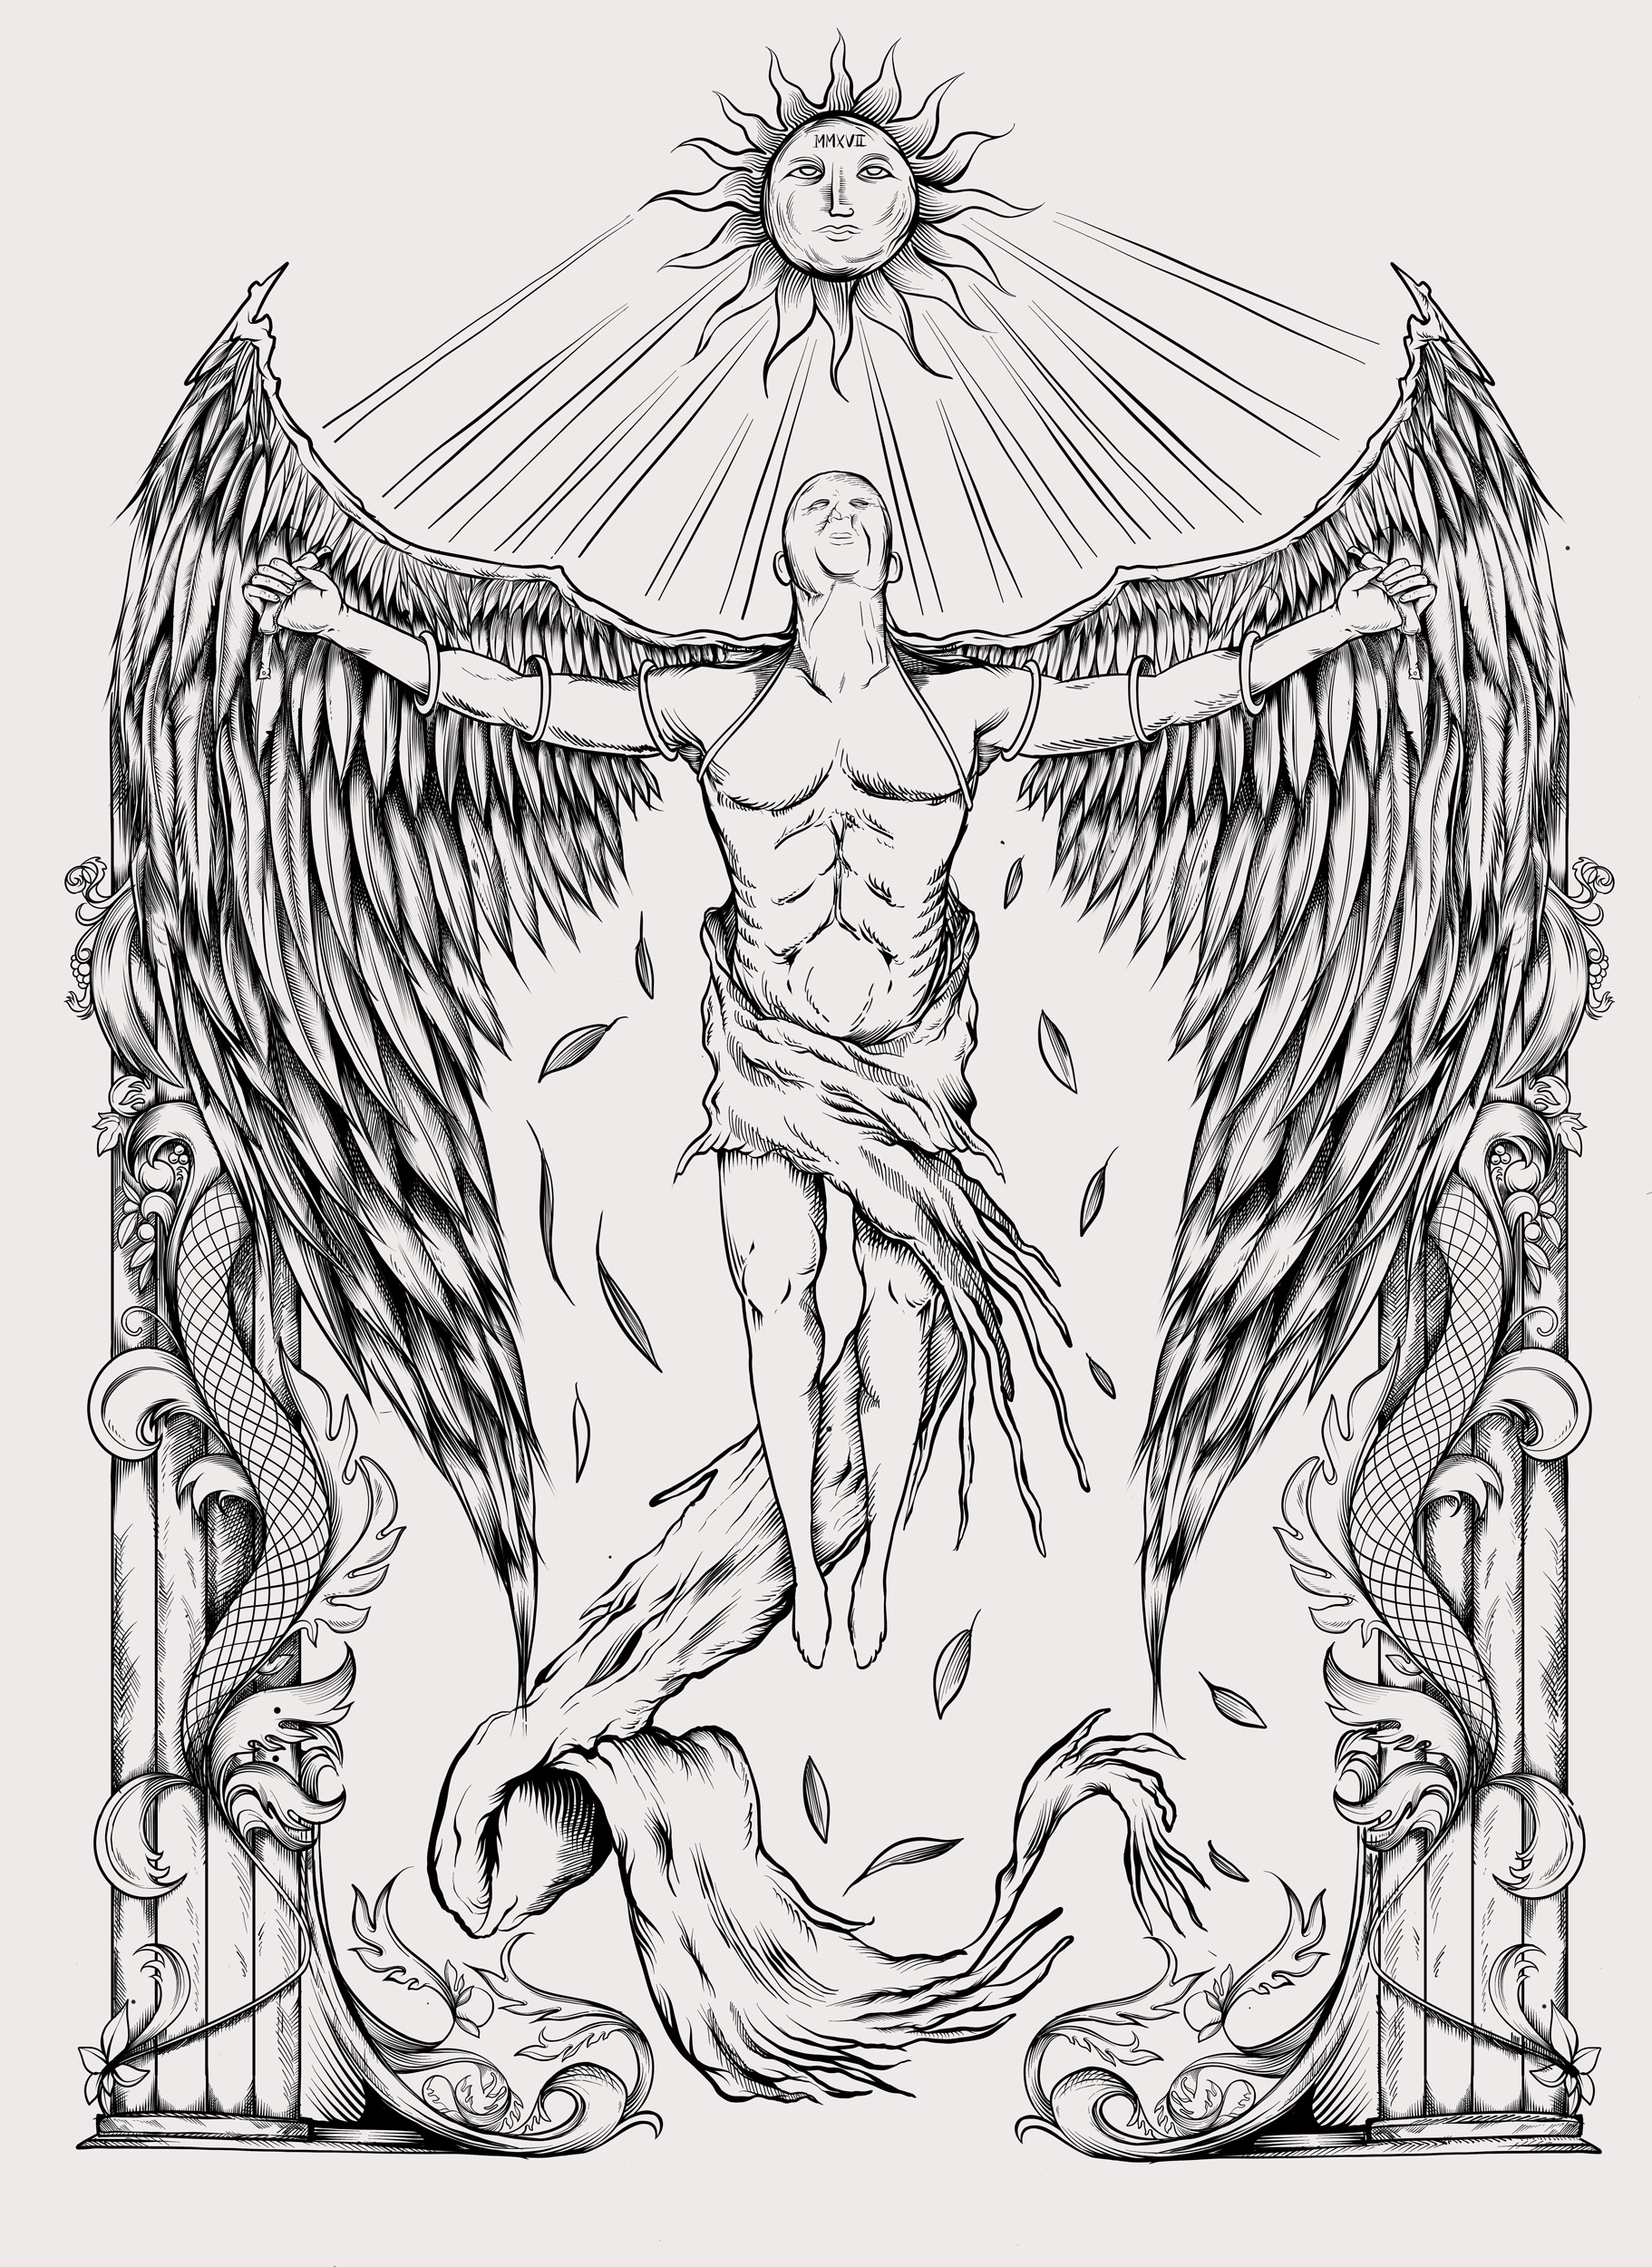 Flying Icarus x Iqarus brand - designed by Giovanni Tamponi illustrations